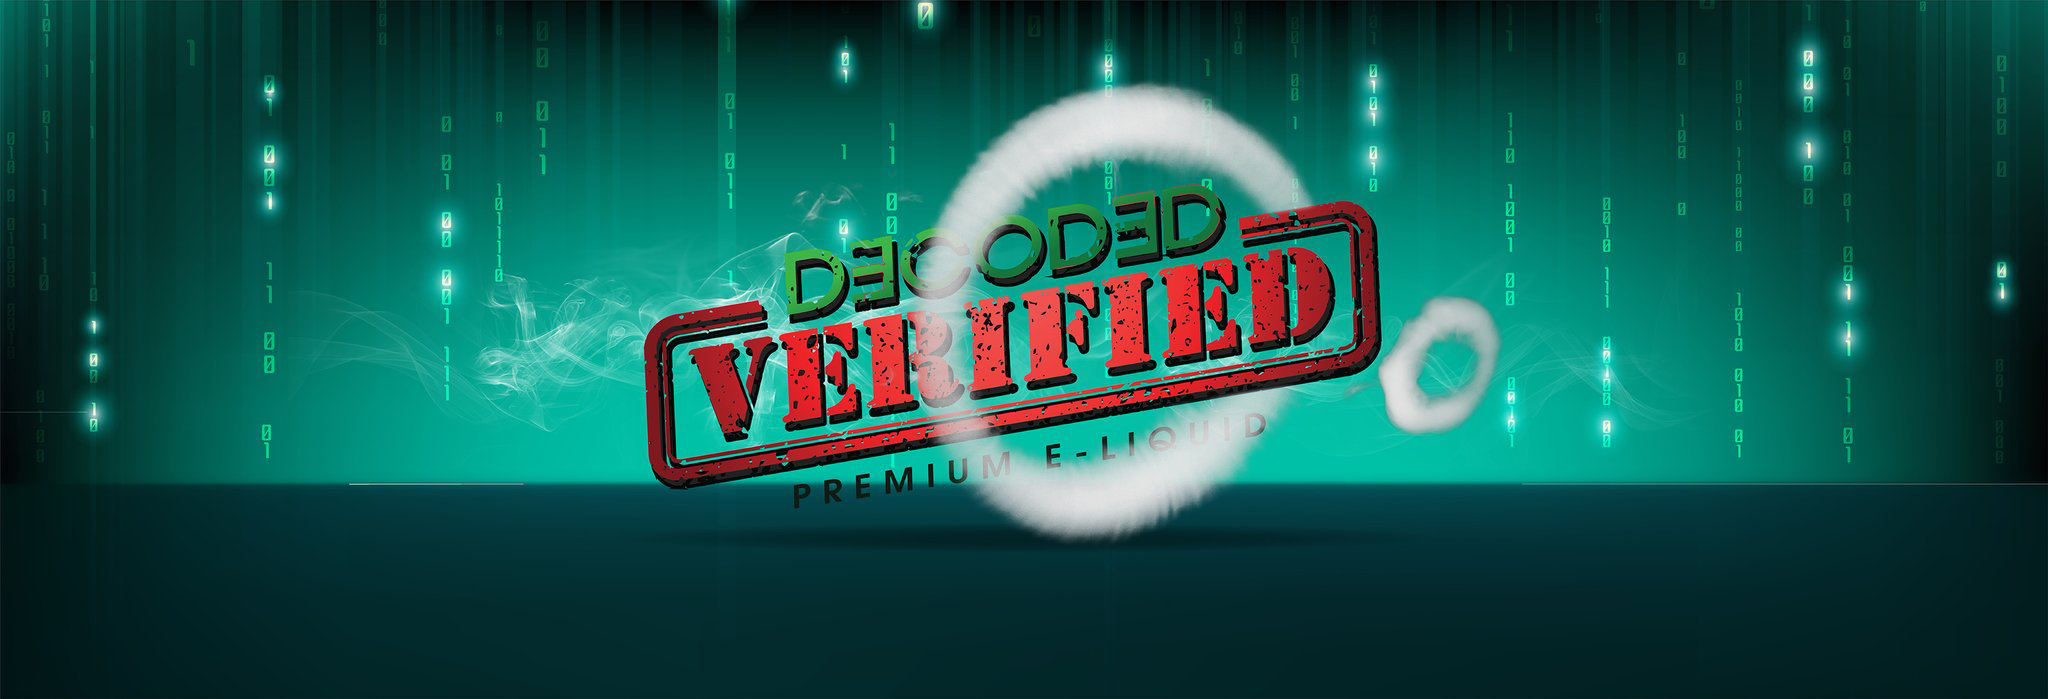 Decoded Verified 100ml Shortfill - ECIGONE